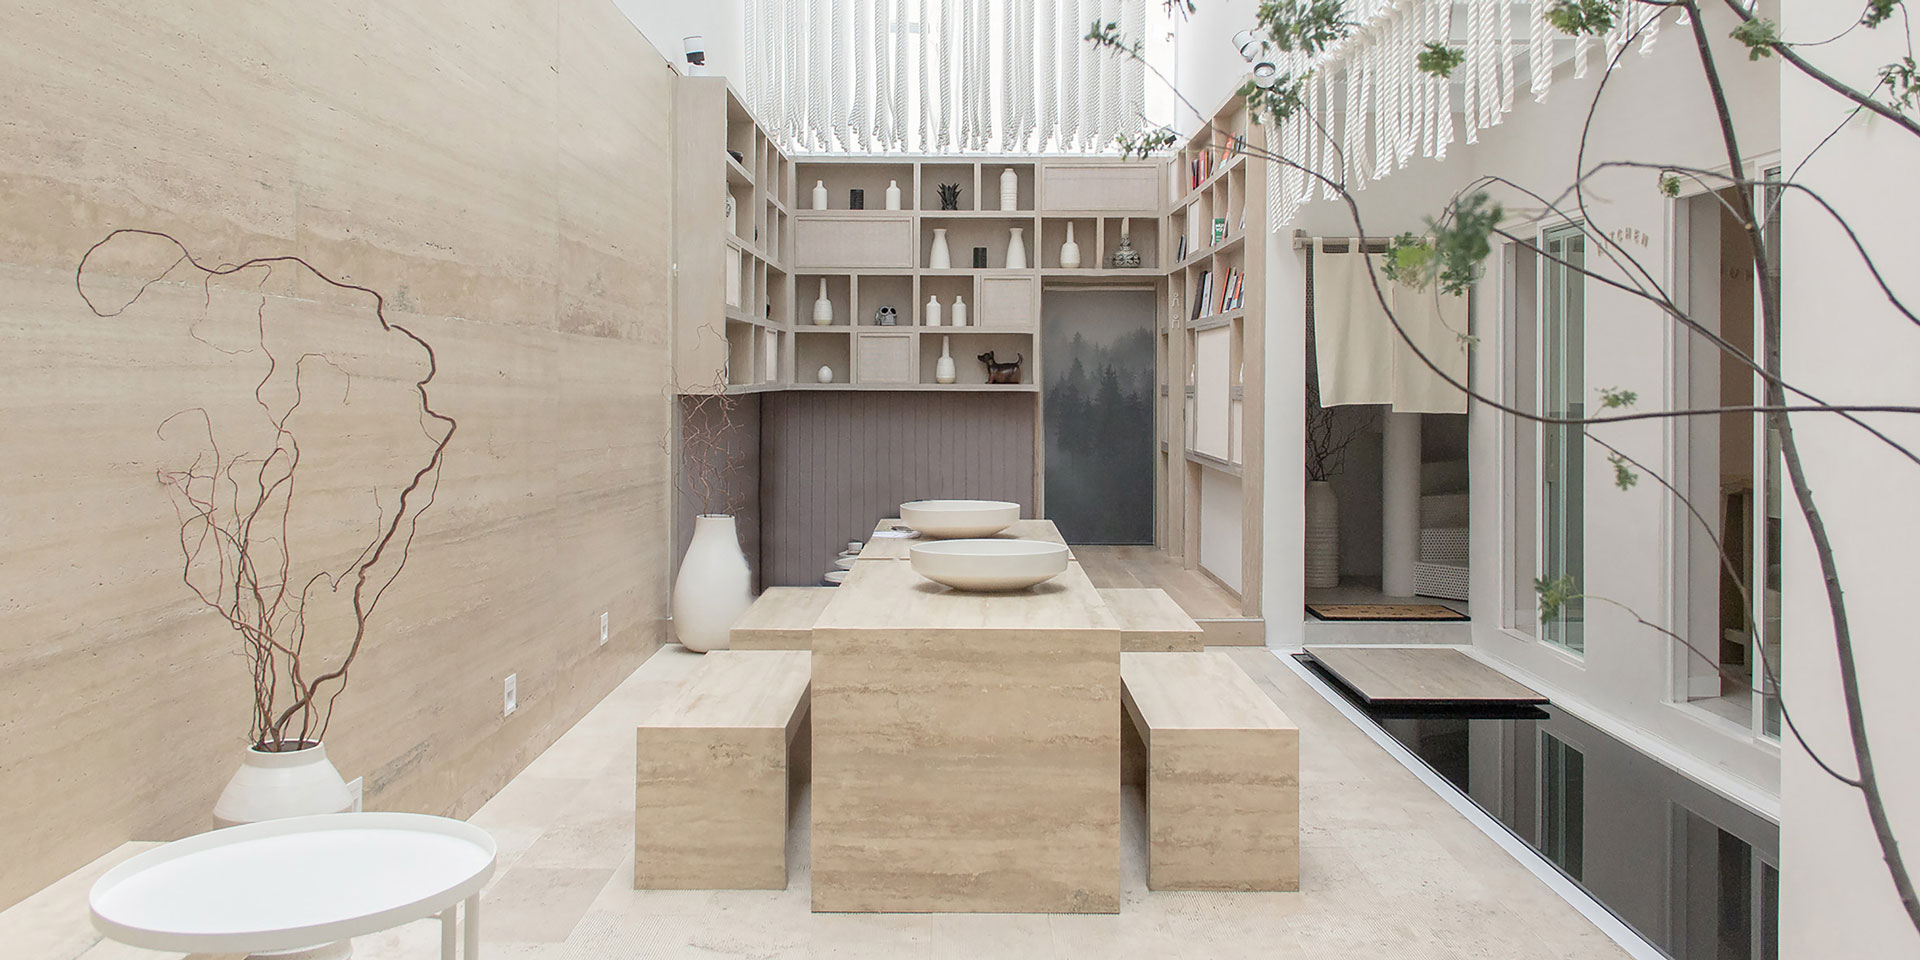 New Hotel in Mexico City Channels Japanese Zen